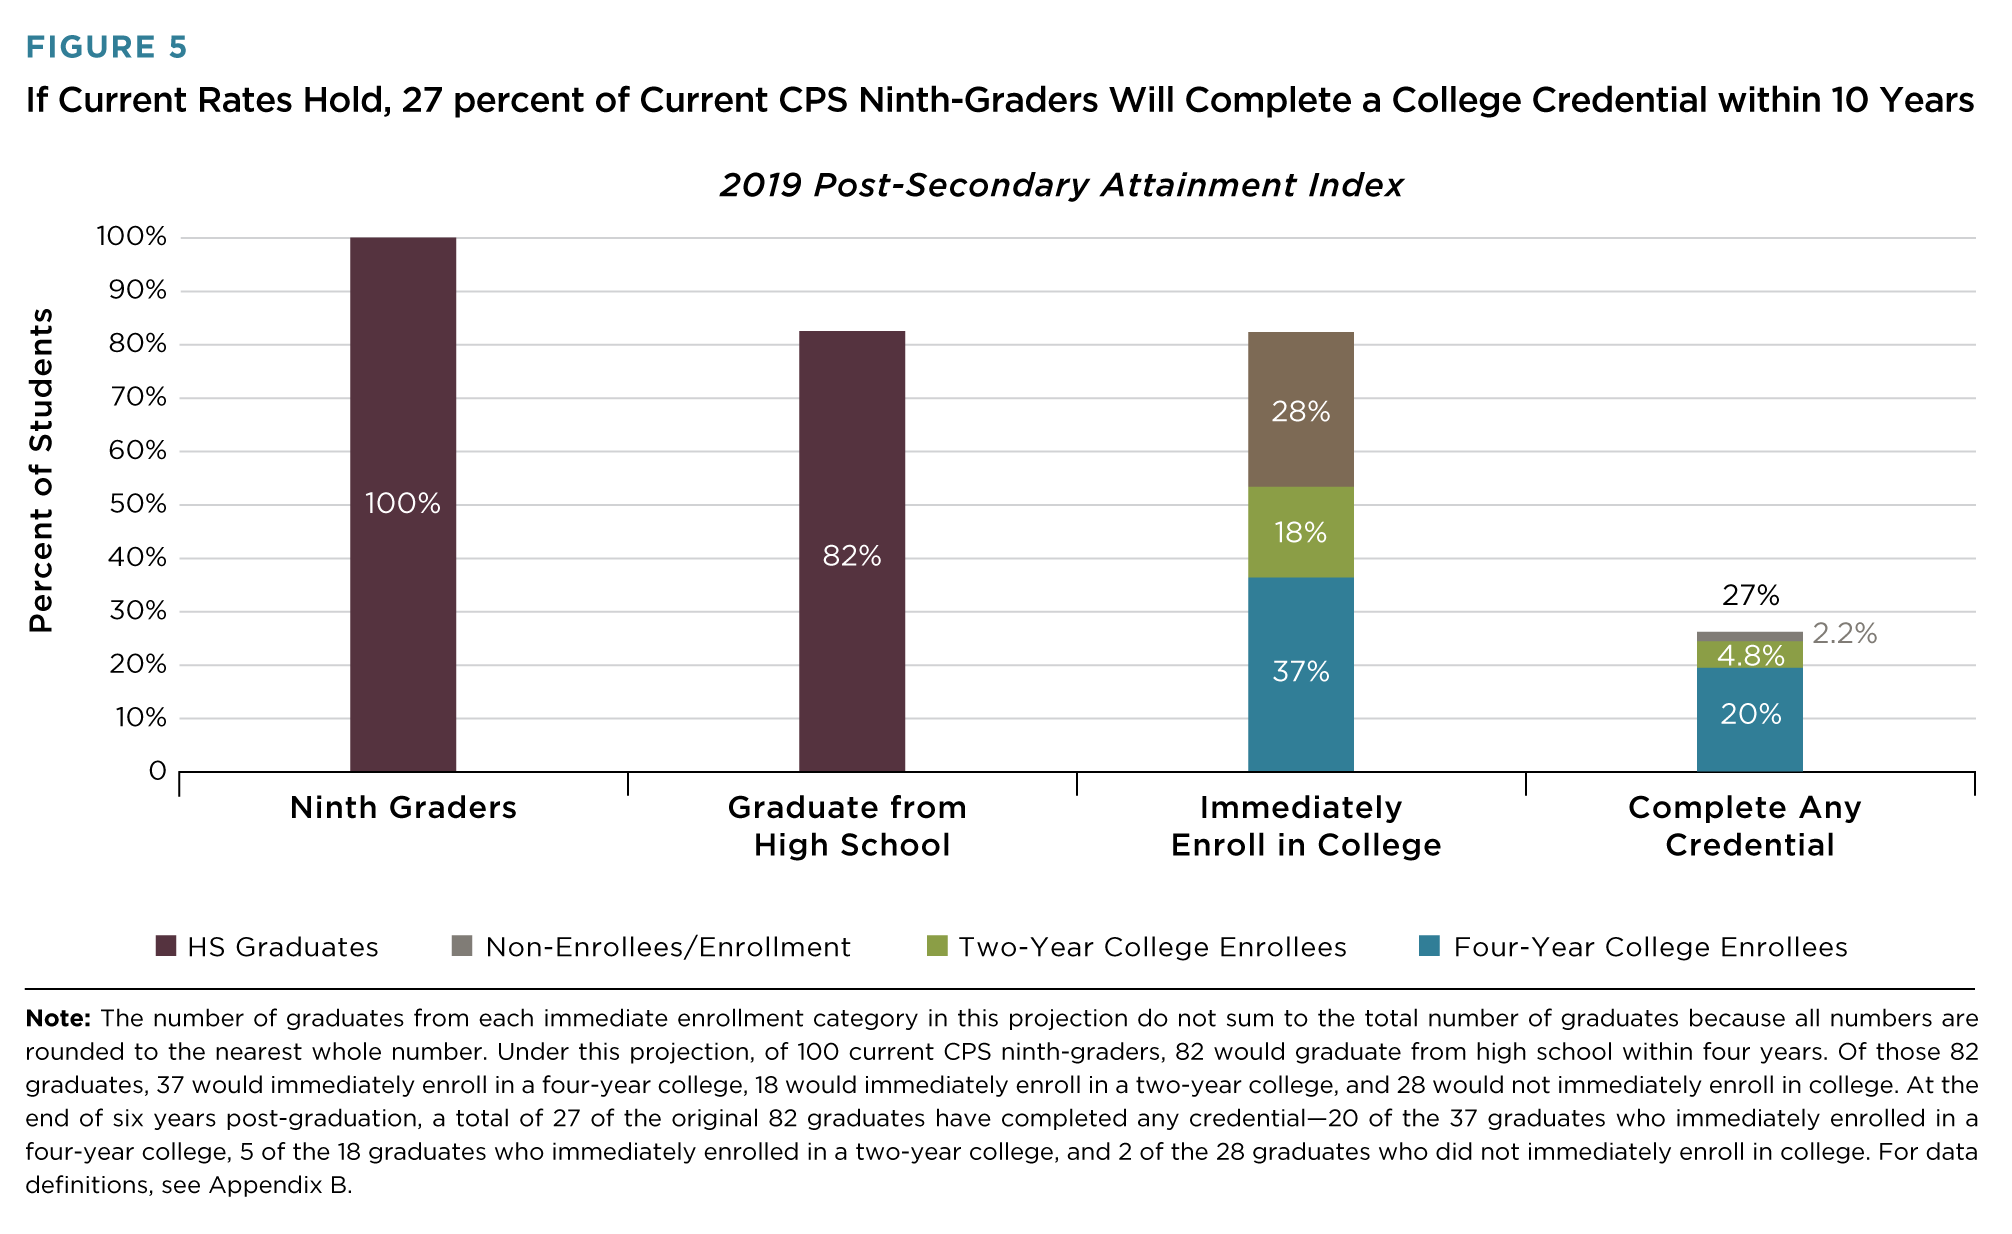 27% of CPS 9th-Graders Projected to Earn College Degree